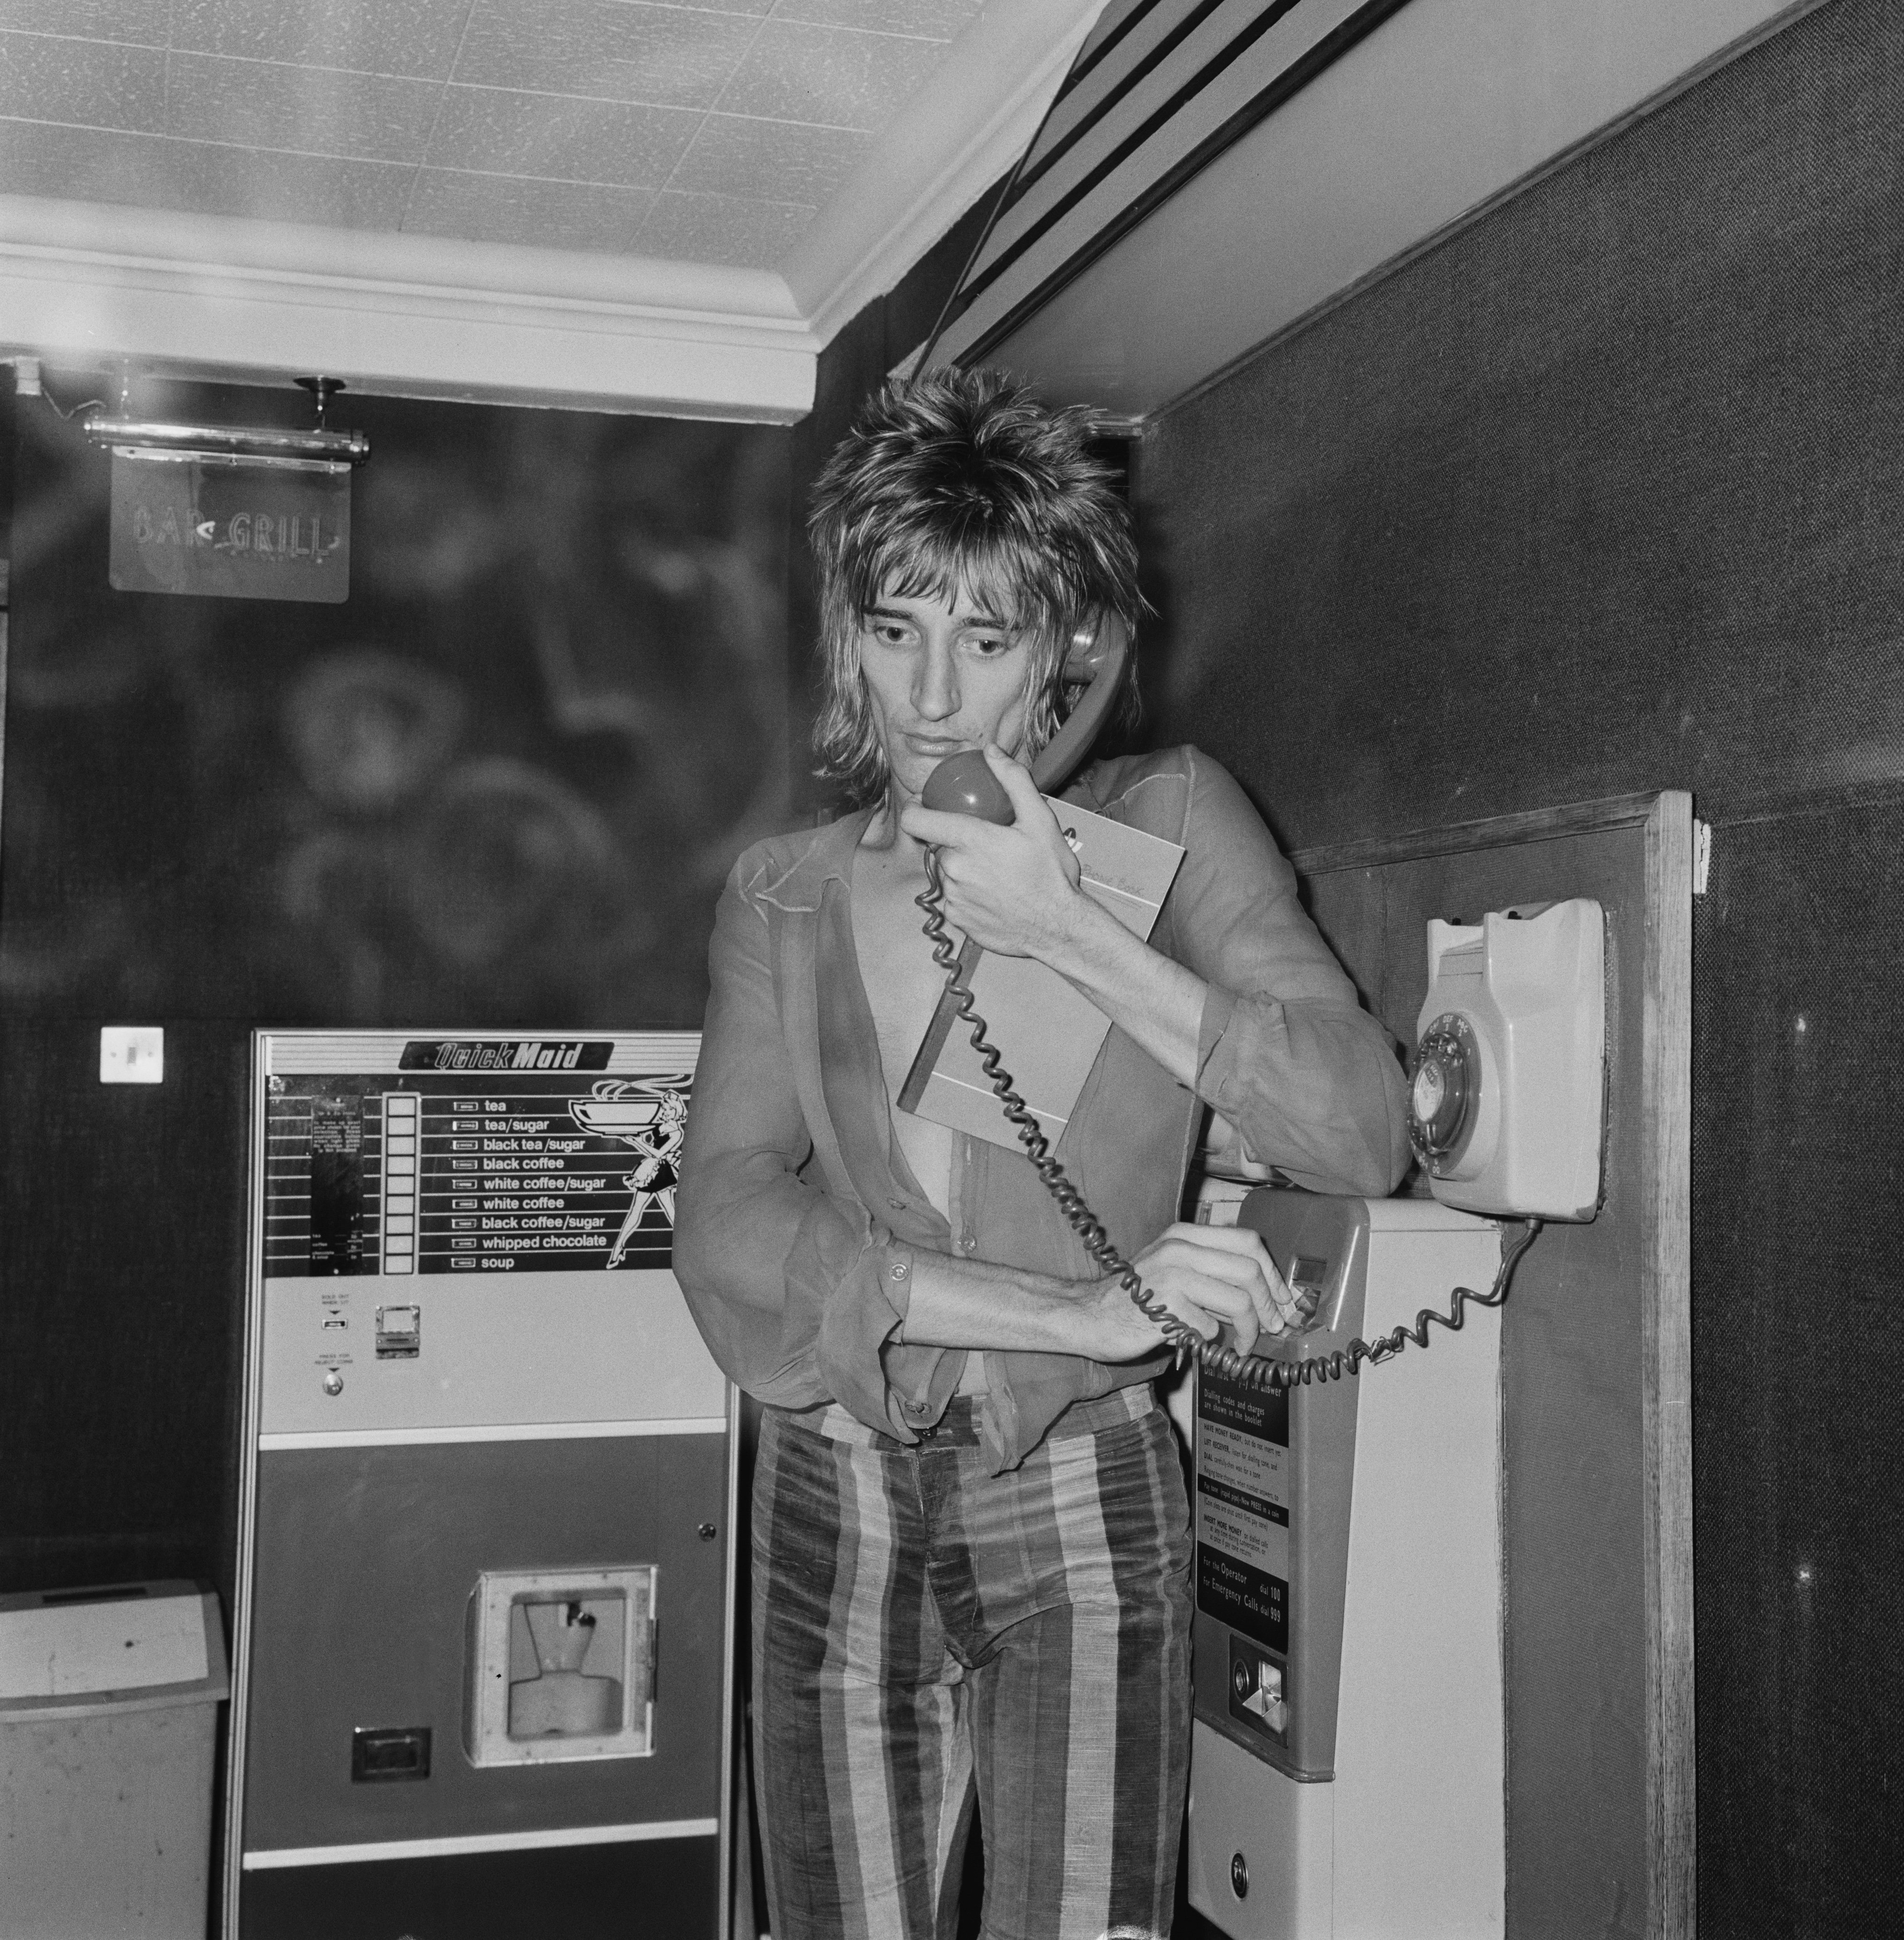 British rock singer and songwriter Rod Stewart pictures while making a phone call, UK, 8th November 1973. (Photo by Pierre Manevy/Daily Express/Hulton Archive/Getty Images)